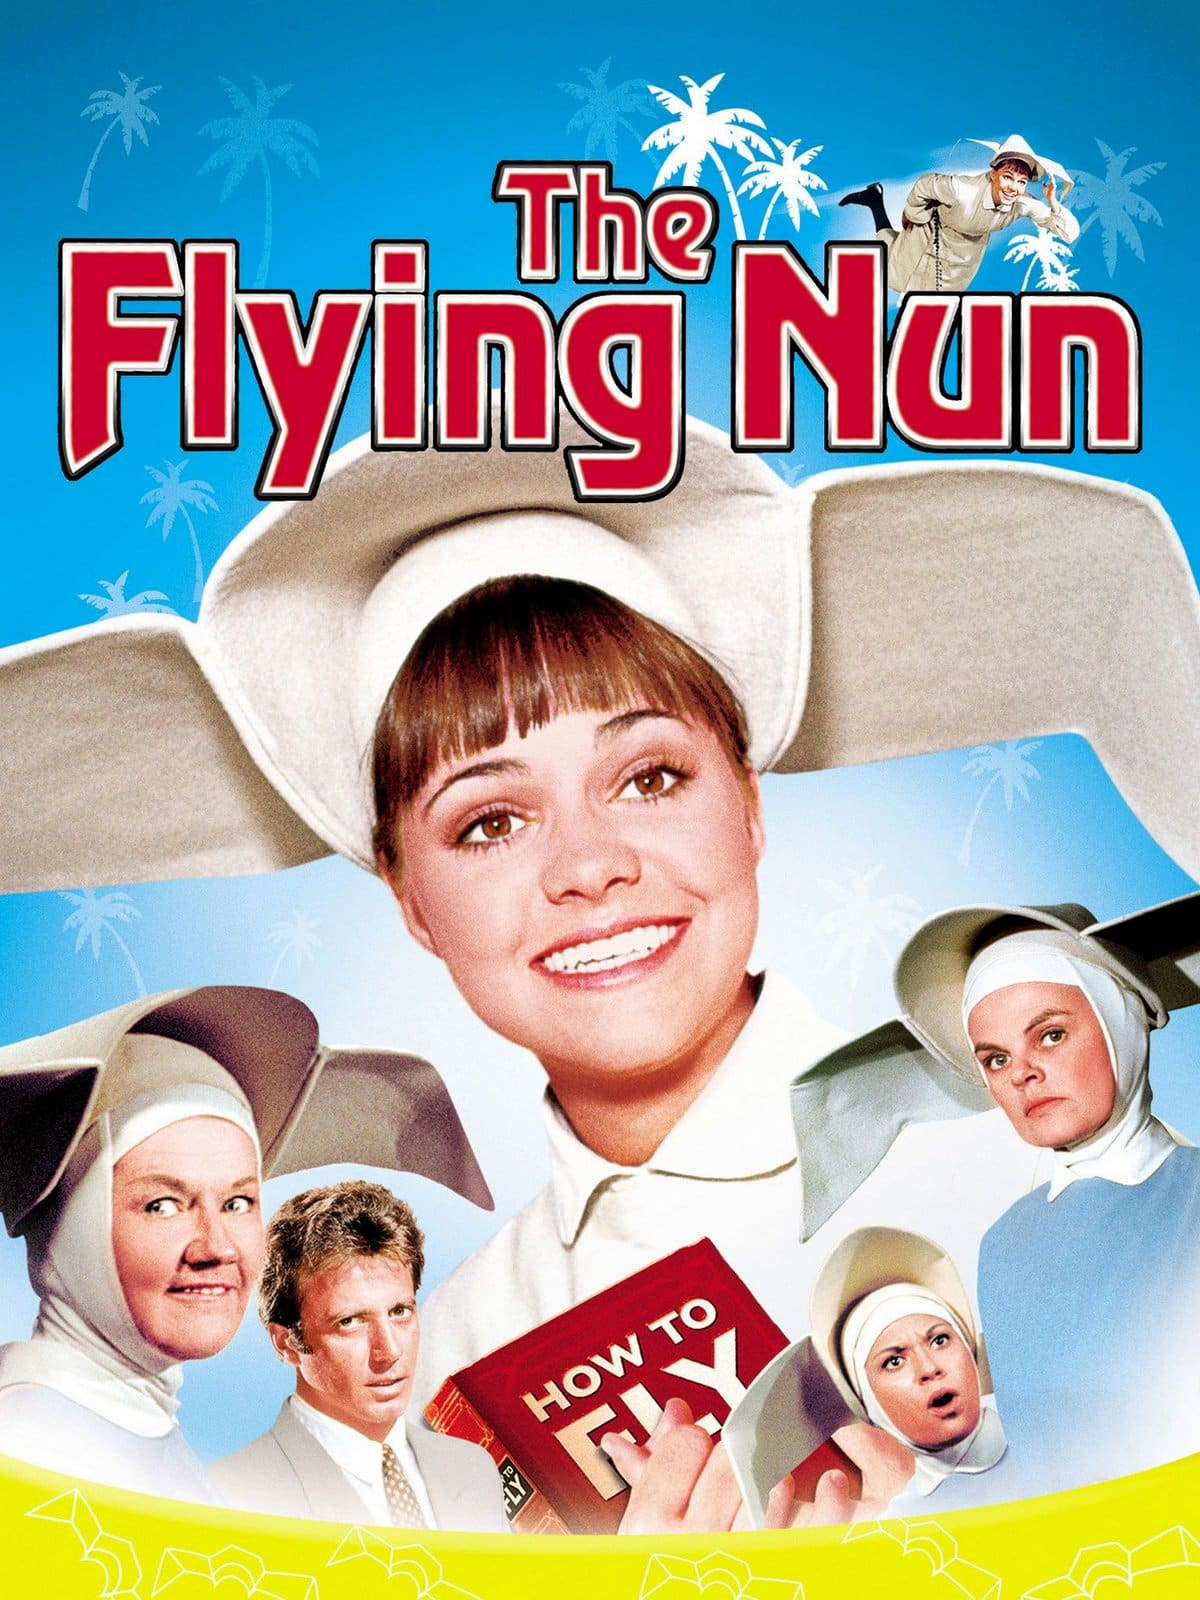 The Flying Nun TV show DVDs